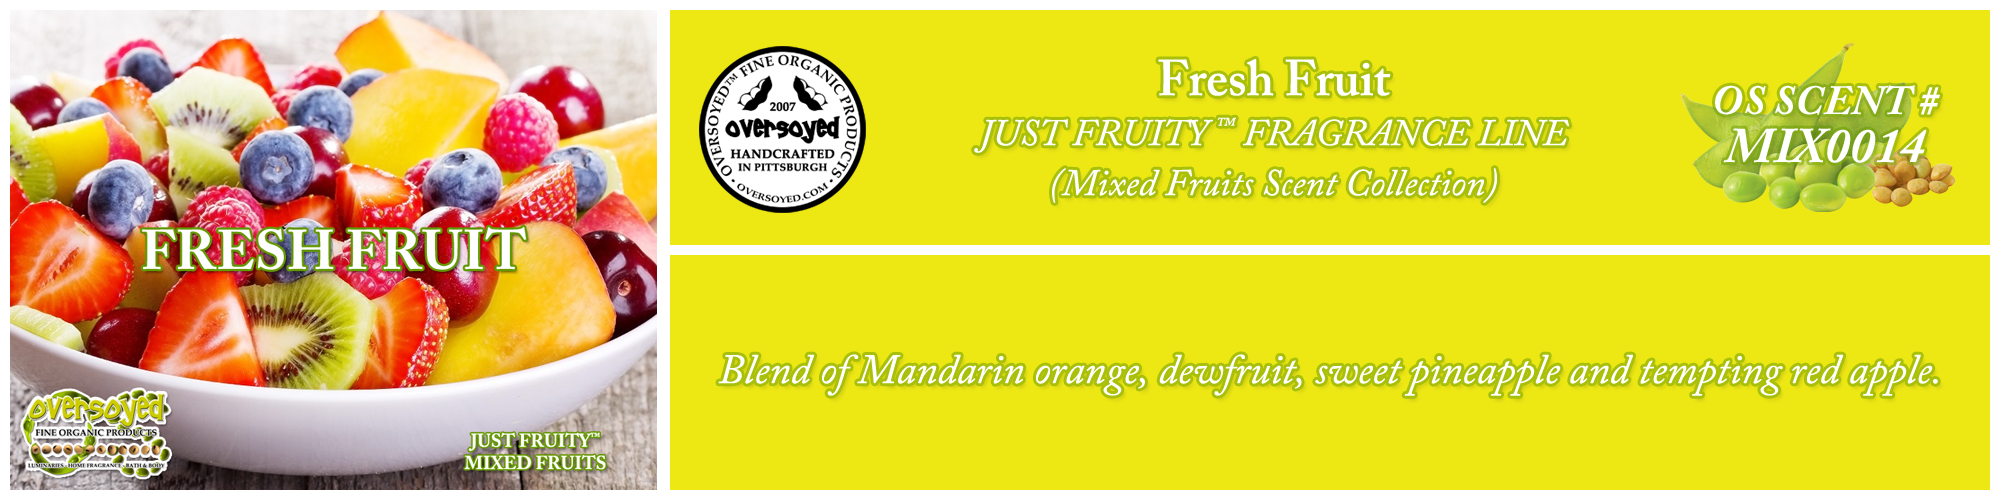 Fresh Fruit Handcrafted Products Collection